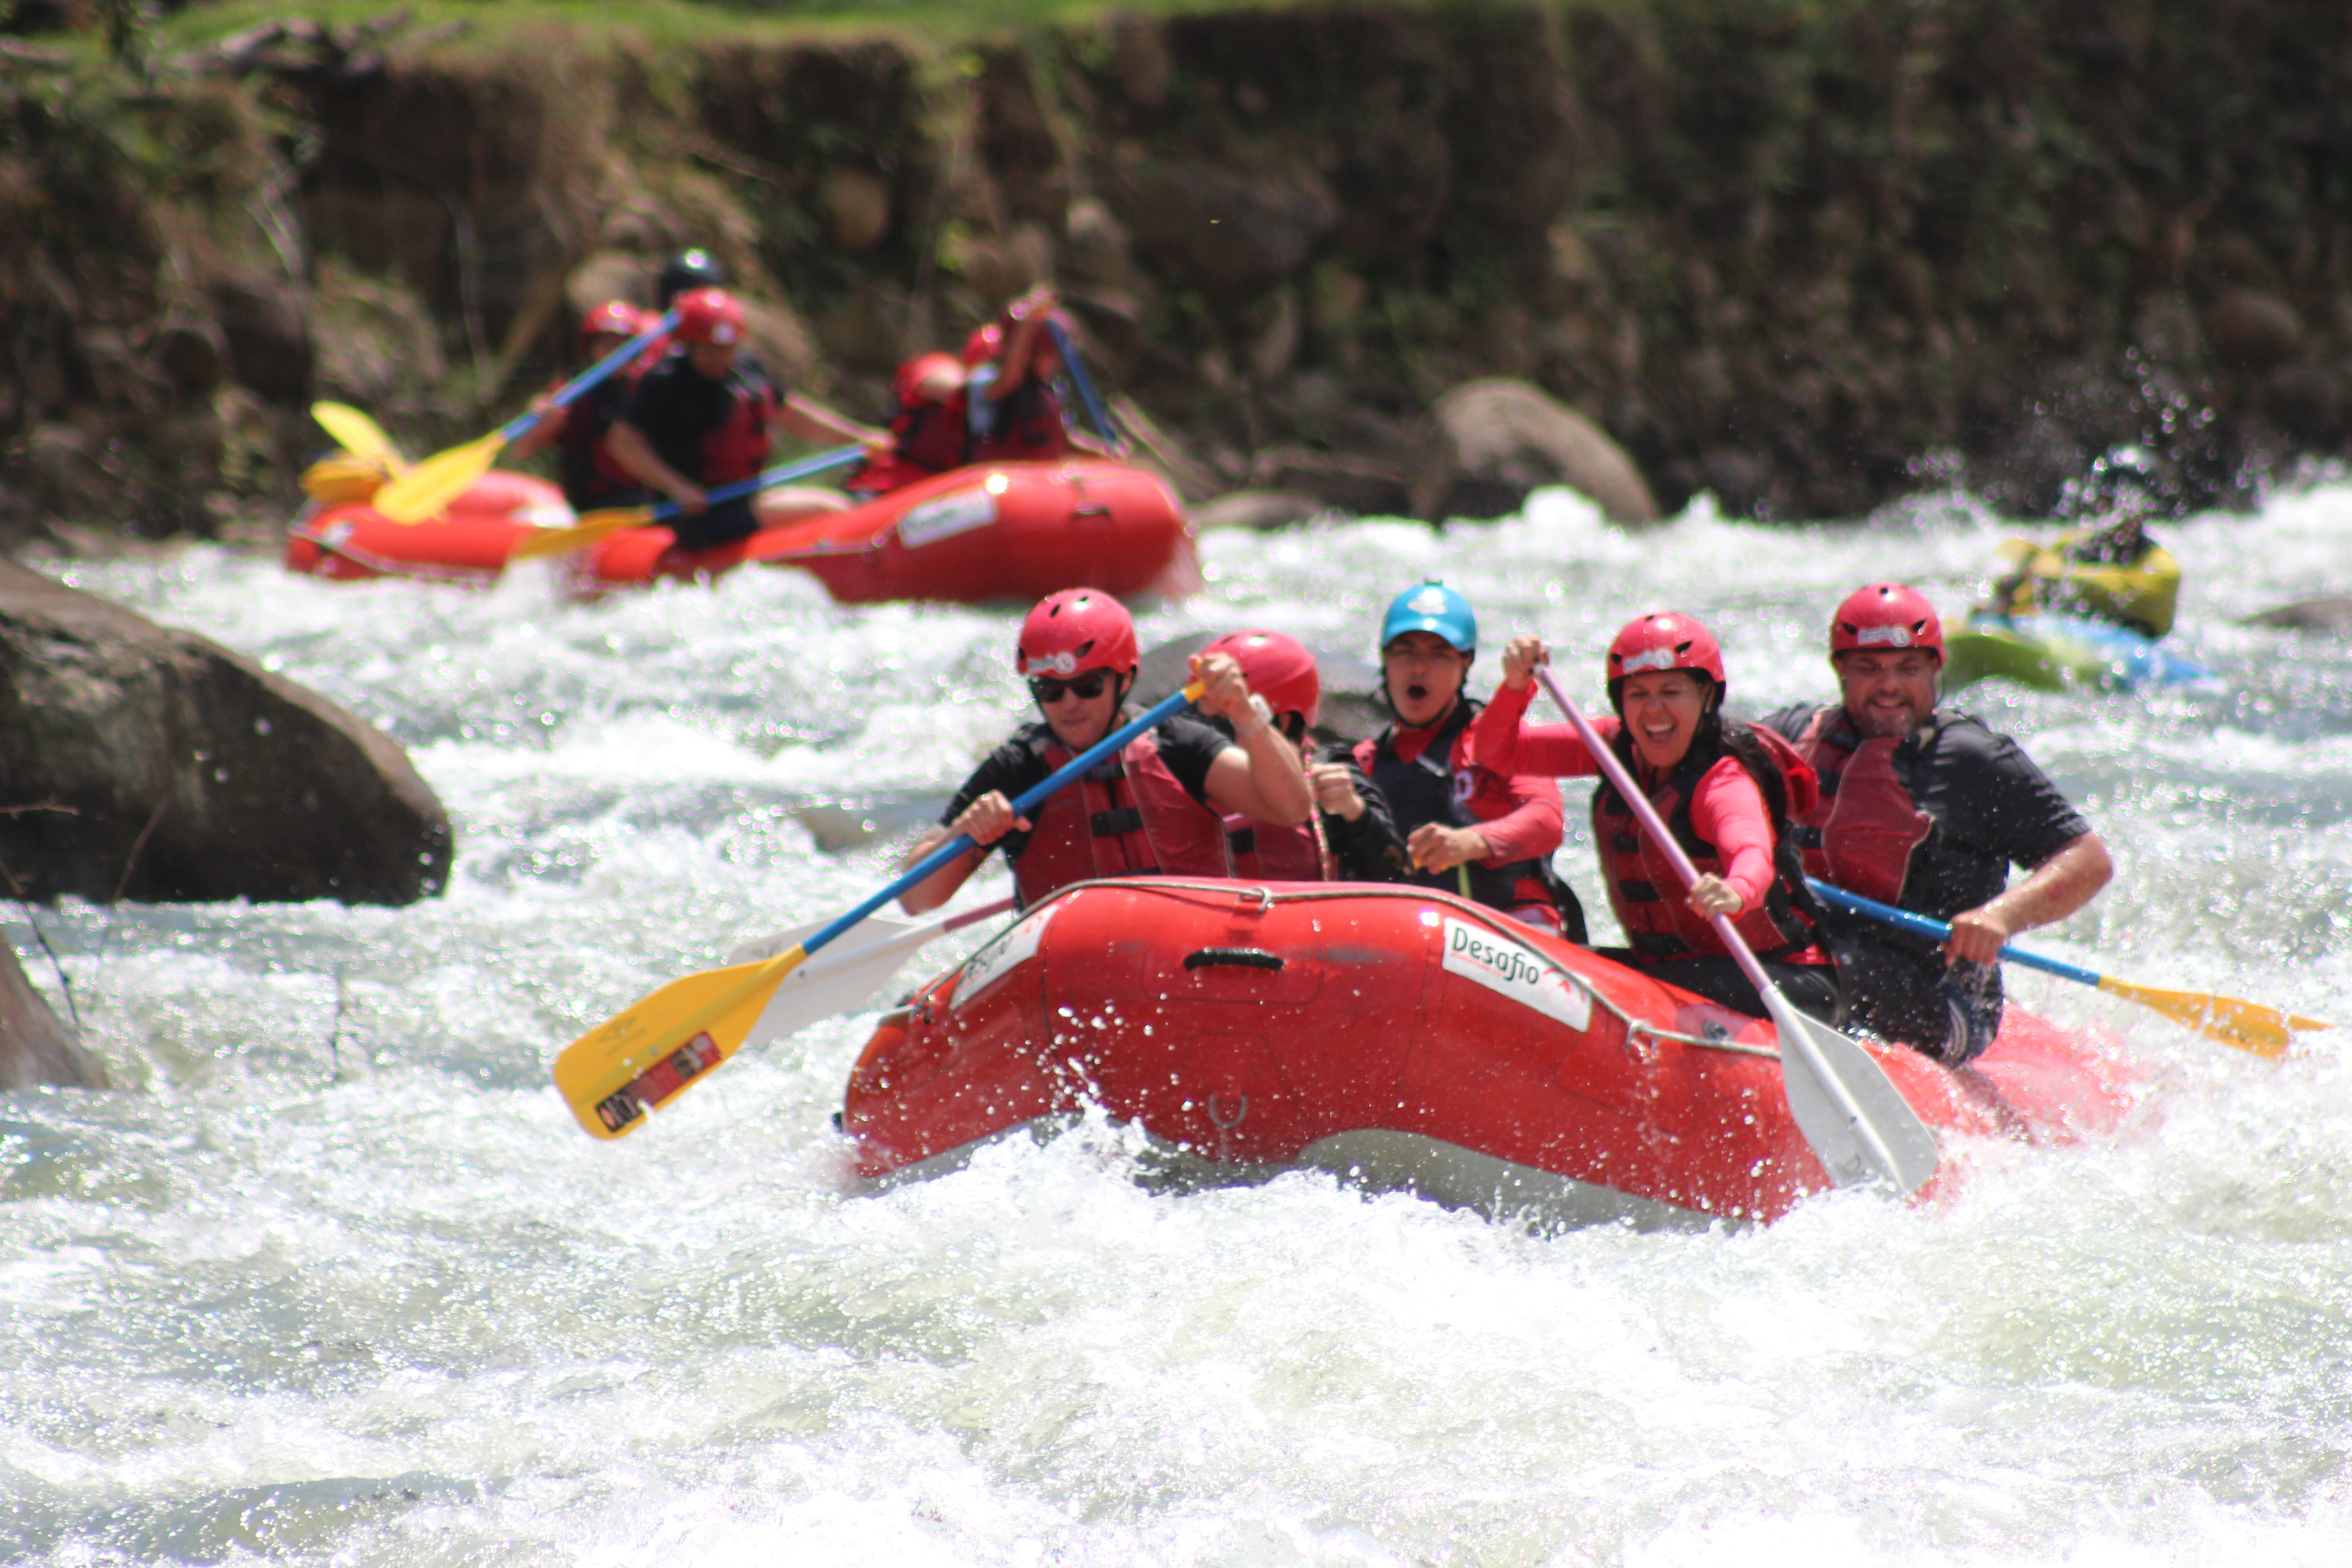 Awesome white water rafting action!